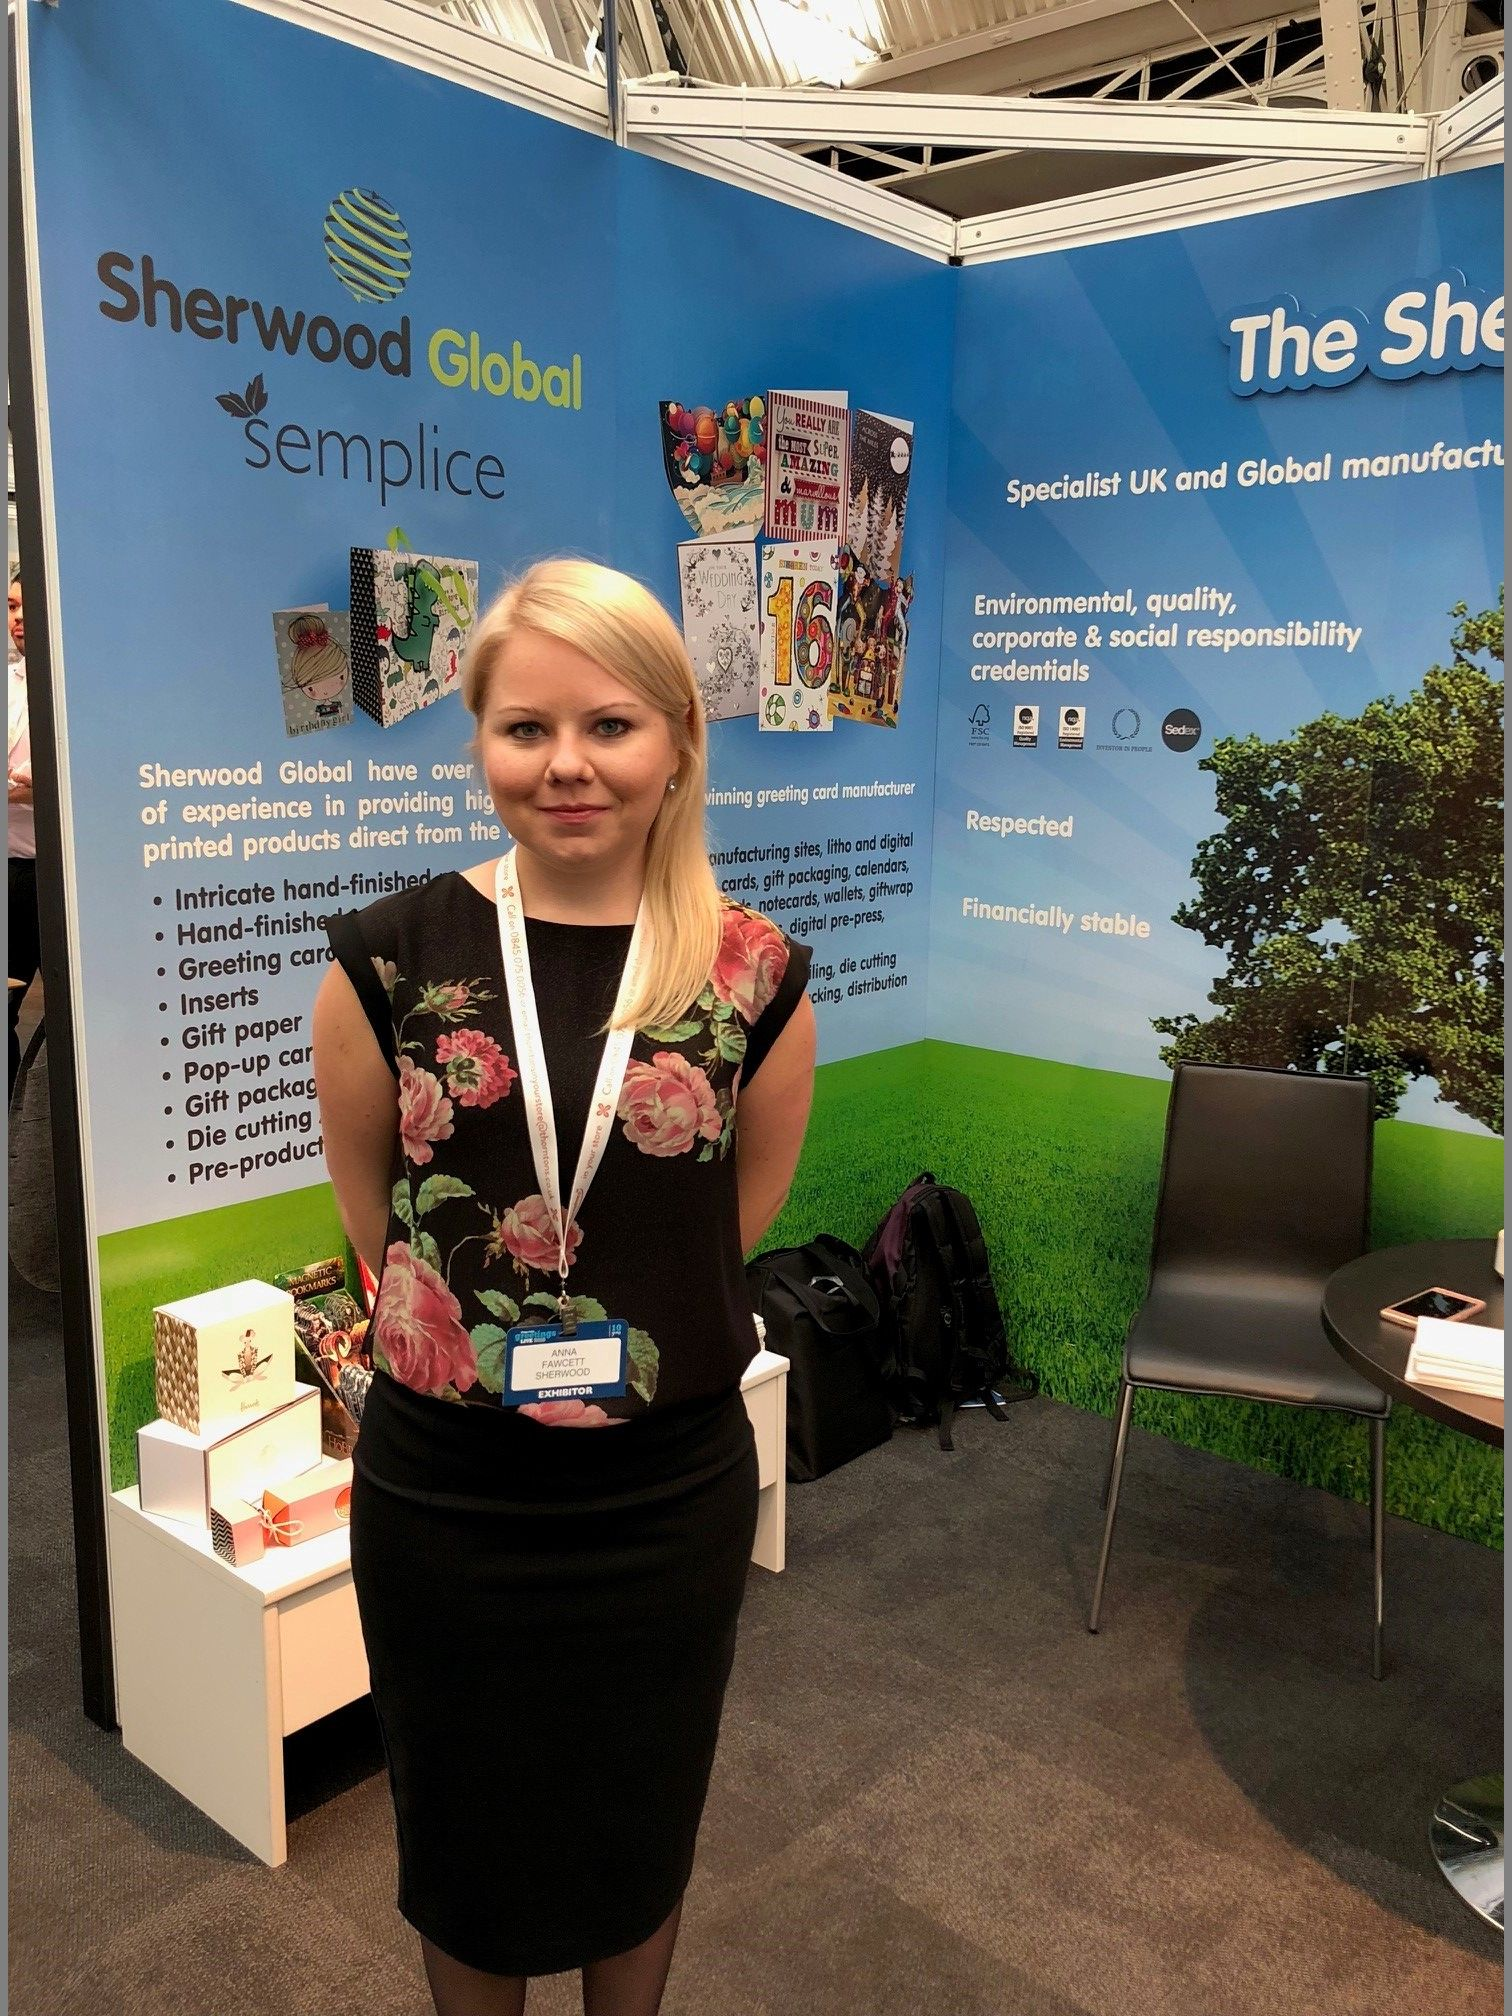 Anna Fawcett, Marketing Manager at The Sherwood Group